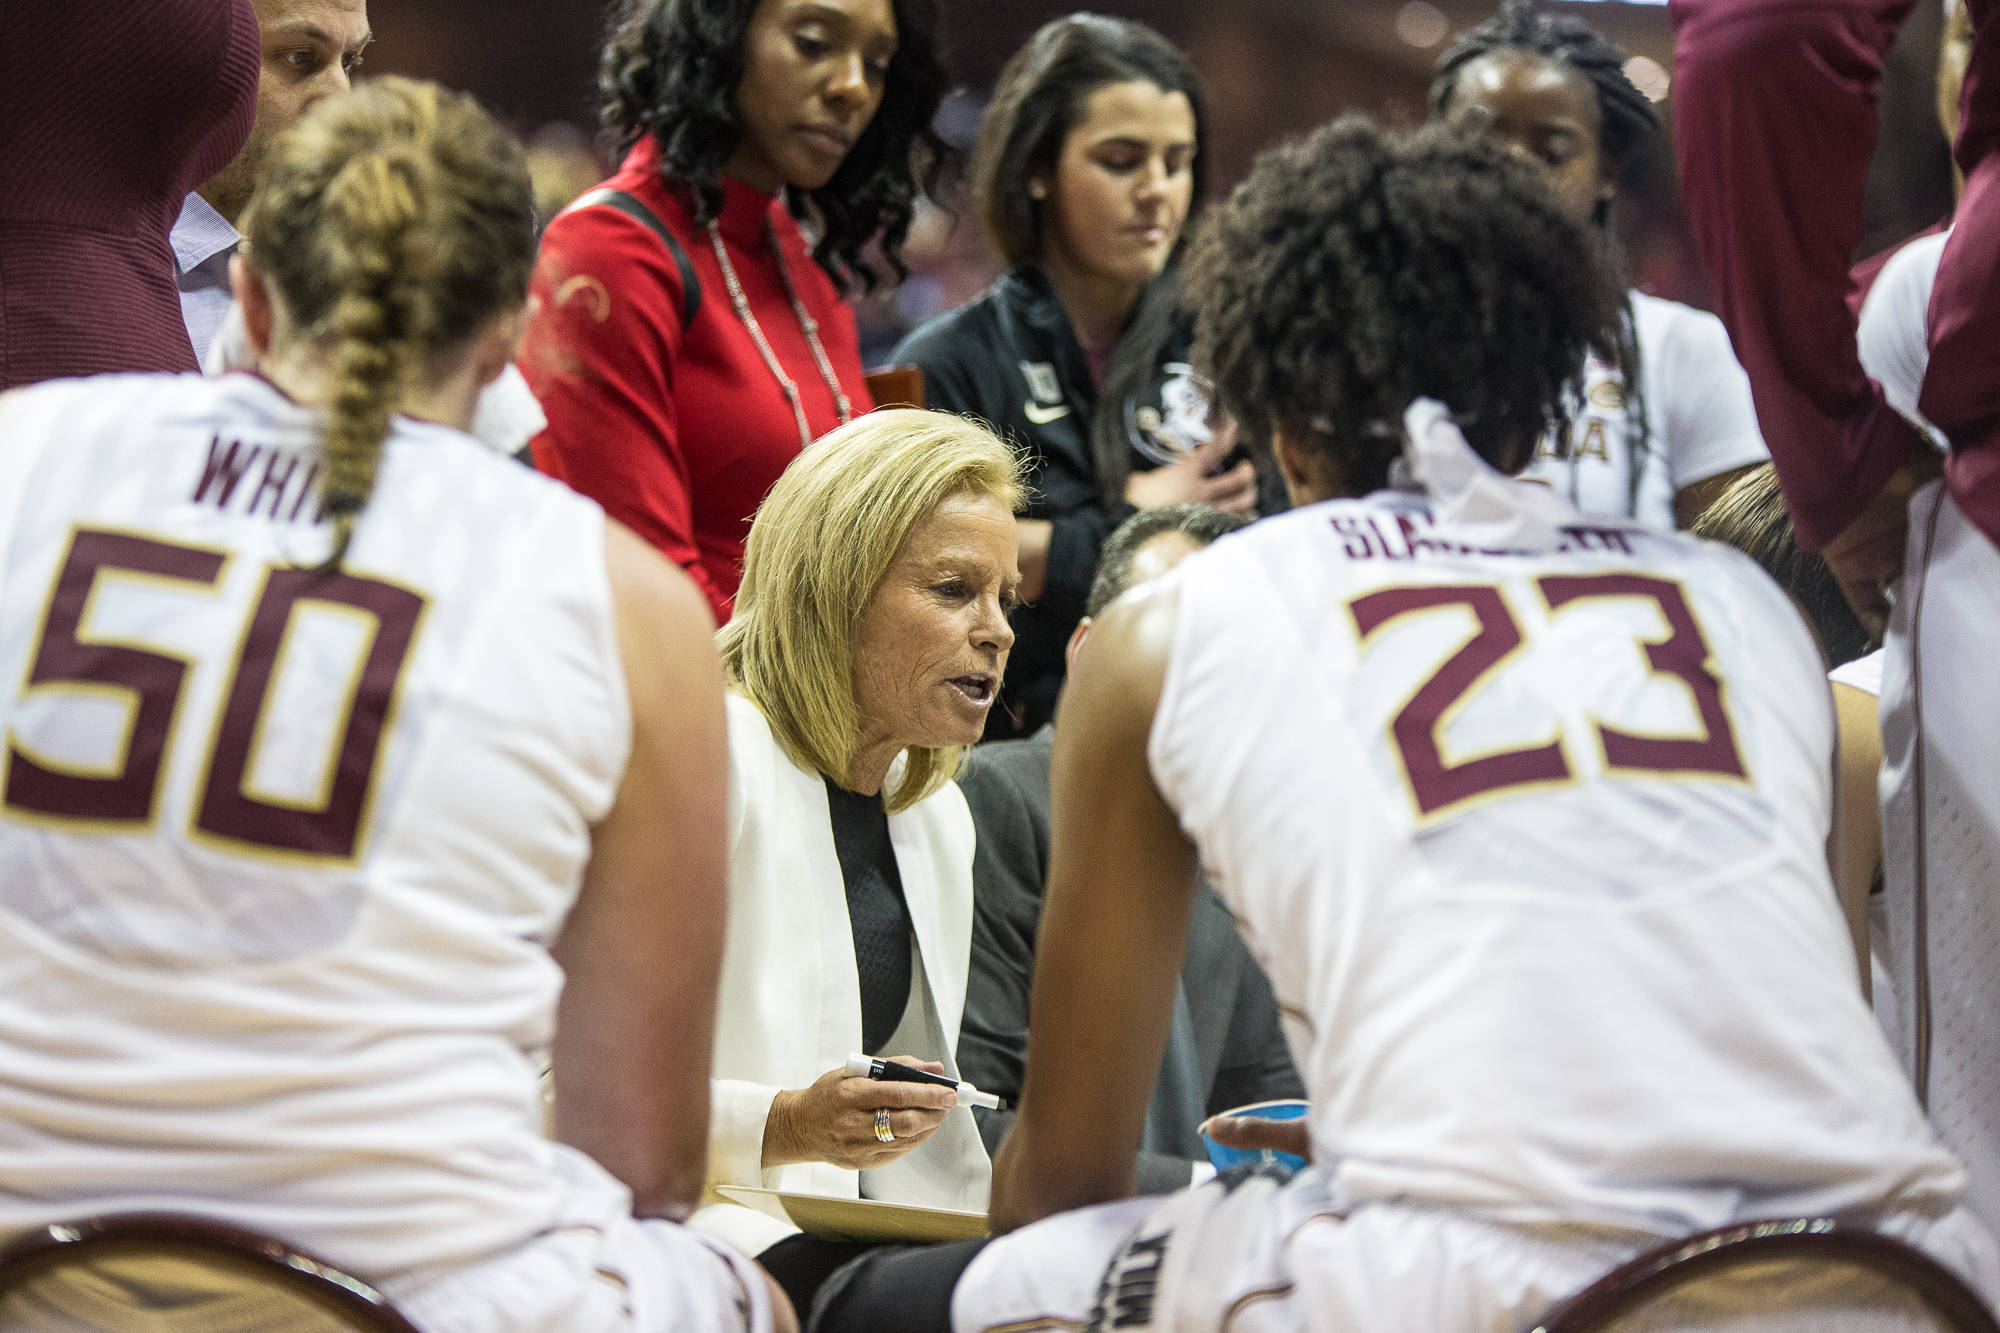 In a 73-62 season-opening win over Jacksonville State on Nov. 11, Head Coach Sue Semrau coached in her 600th game with Florida State.